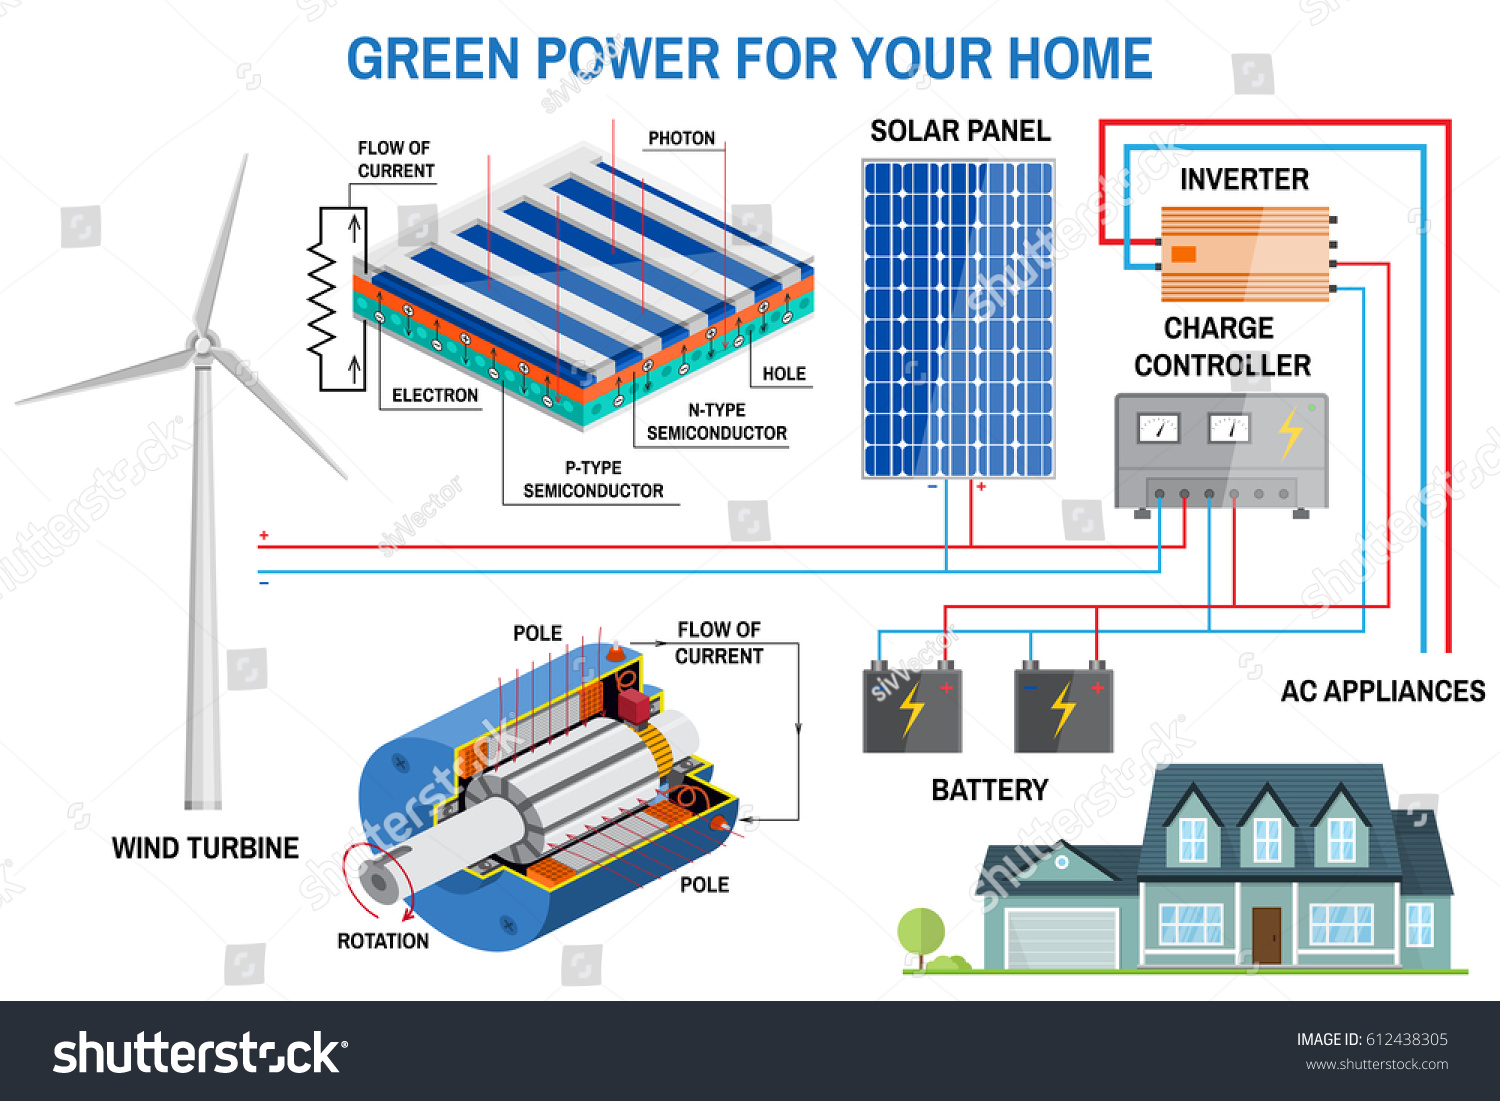 Fantastic Bulldog Car Wiring Diagrams Big Super Switch Wiring Regular Dimarzio Ep1112 Ibanez Humbuckers Youthful Security Wires White3 Wire Humbucker Solar Panel Wind Power Generation System Stock Vector 612438305 ..